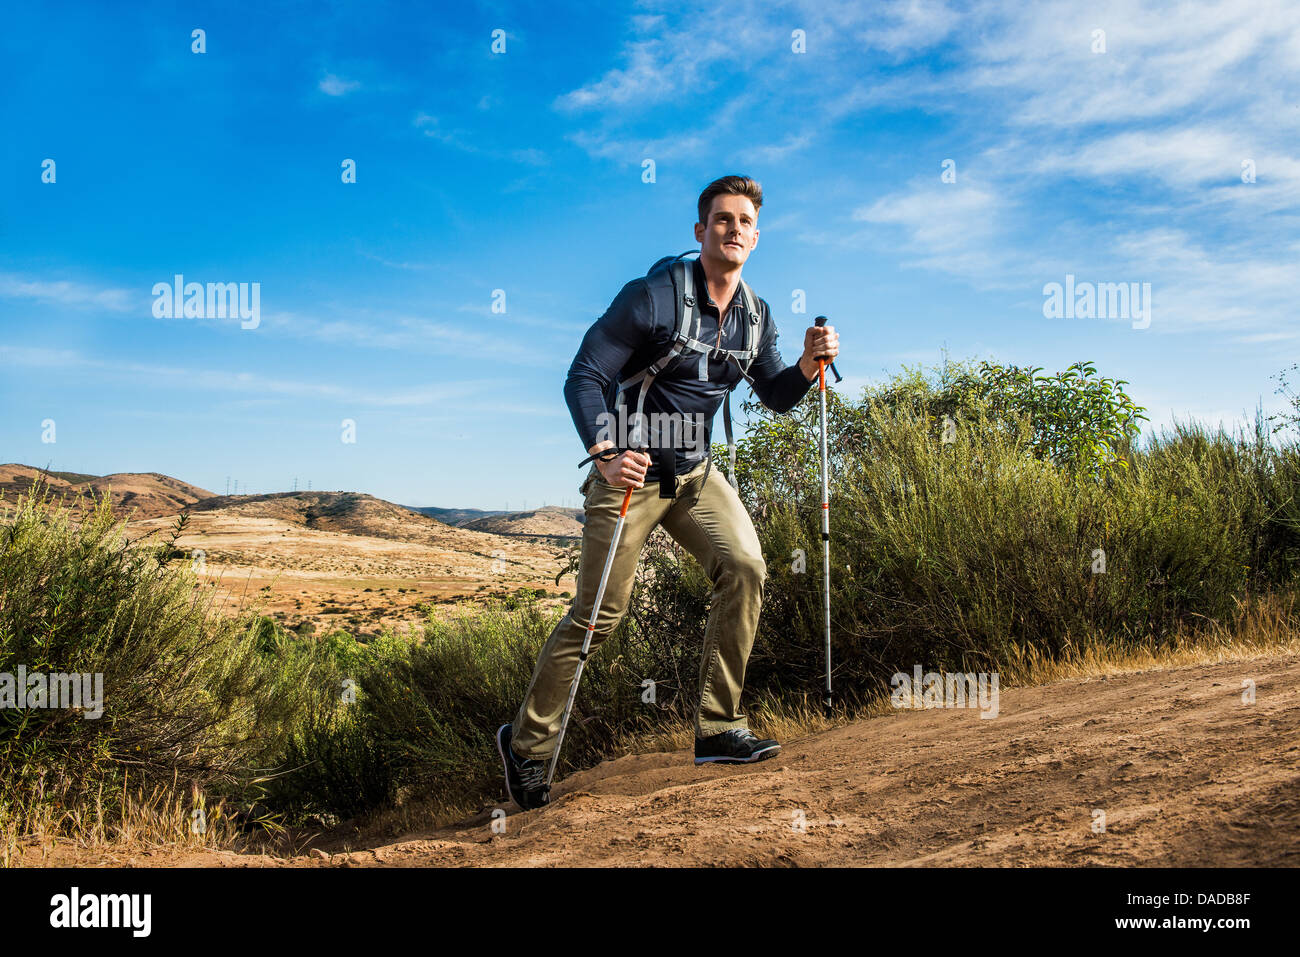 Male hiker in rural setting - Stock Image